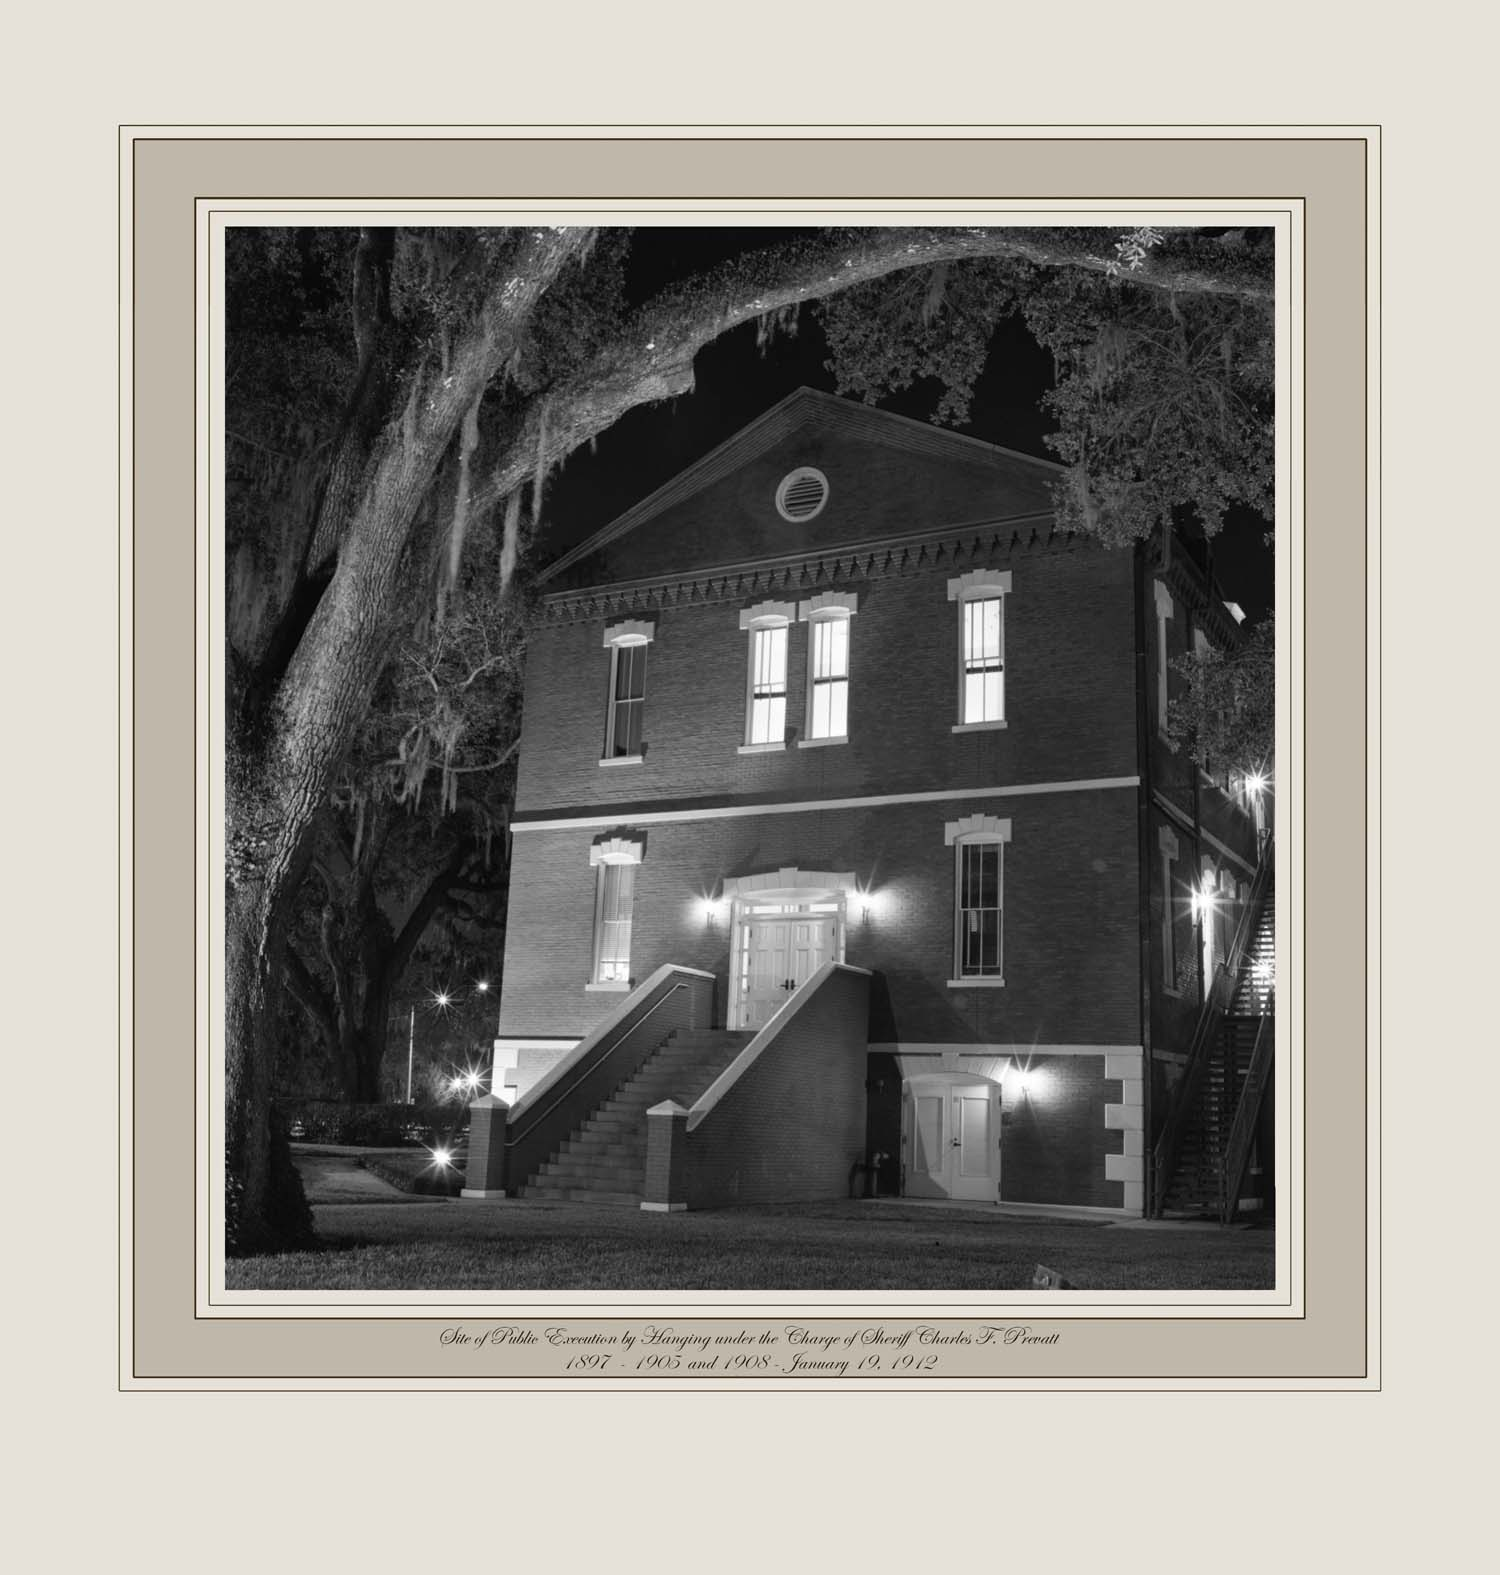 Site of Public Execution by Hanging under the Charge of Sheriff Charles F. Prevatt, 1897  - 1905 and 1908 - January 19, 1912 (Osceola Courthouse, Kissimmee, Florida)